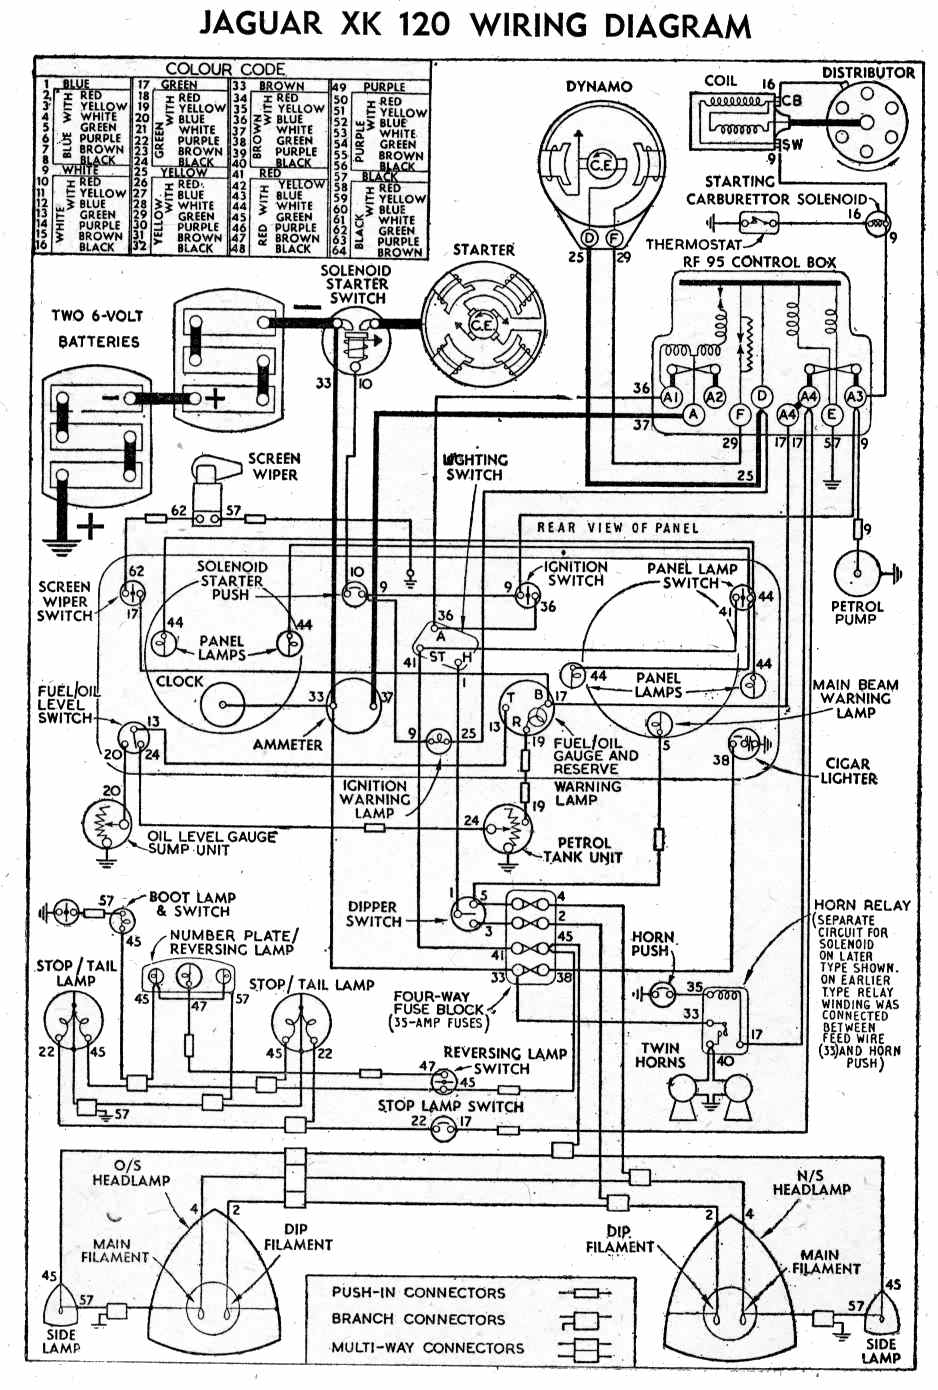 hight resolution of jaguar xk 150 wiring diagram wiring diagram mega jaguar xk 150 wiring diagram jaguar xk 150 wiring diagram